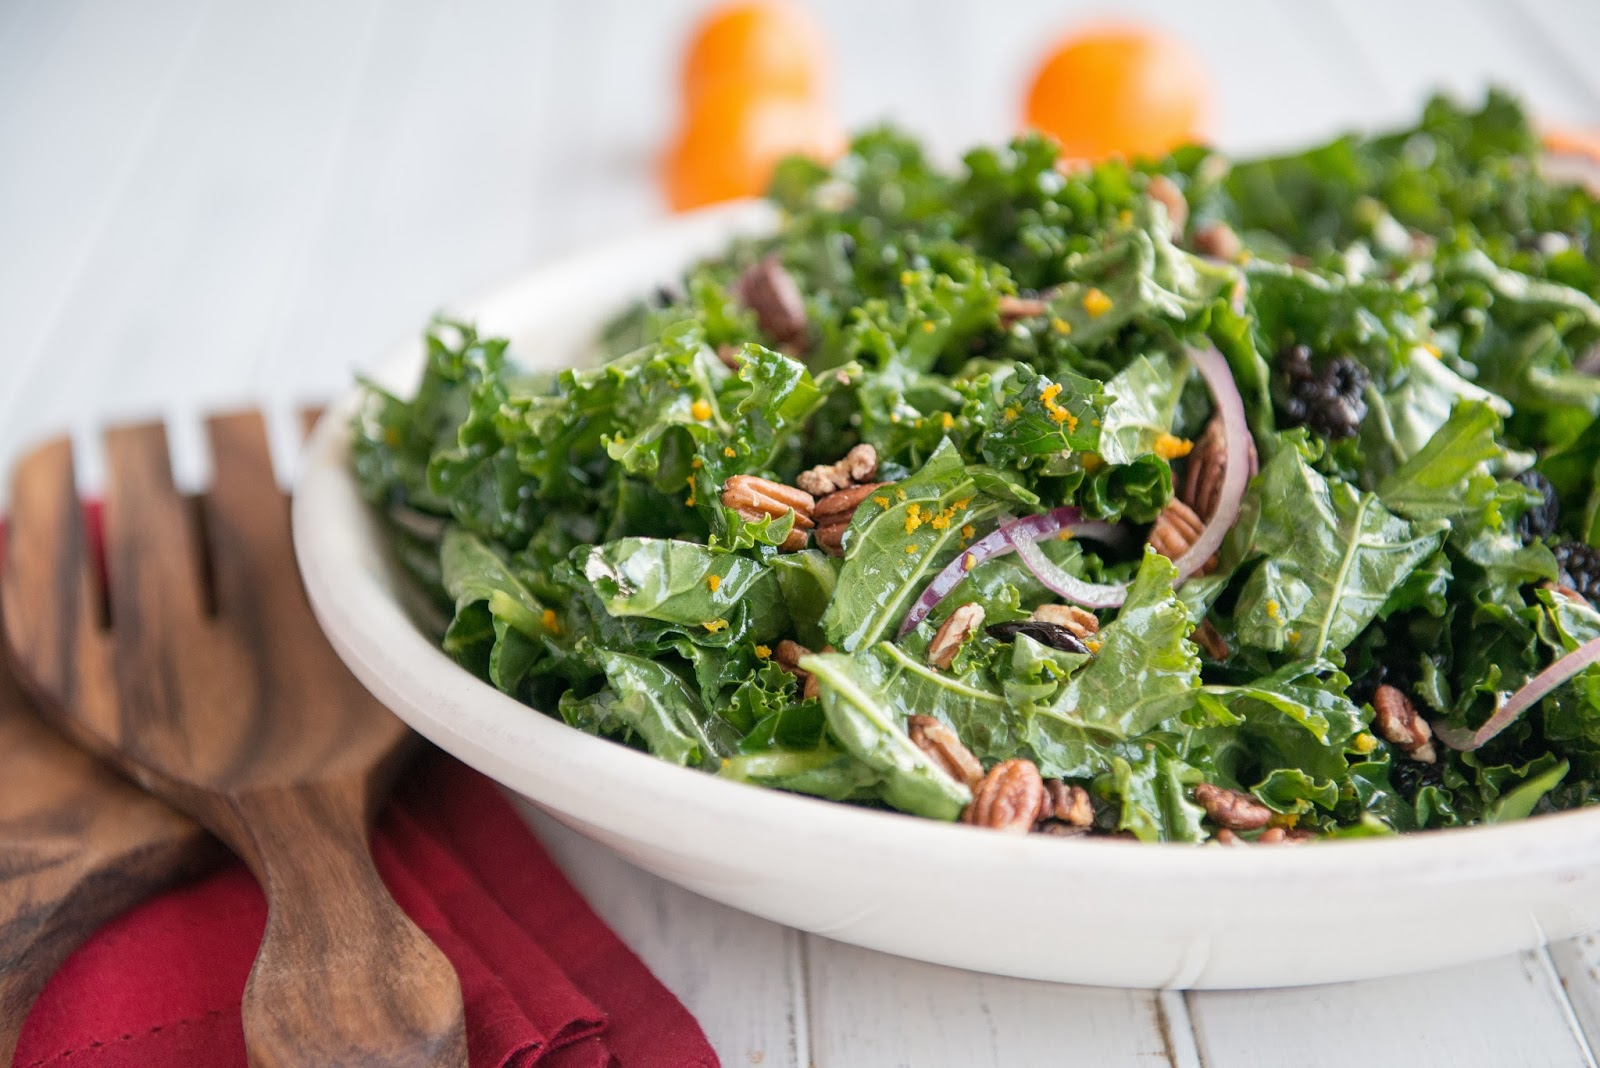 Nourishing Meals: Christmas Kale Salad